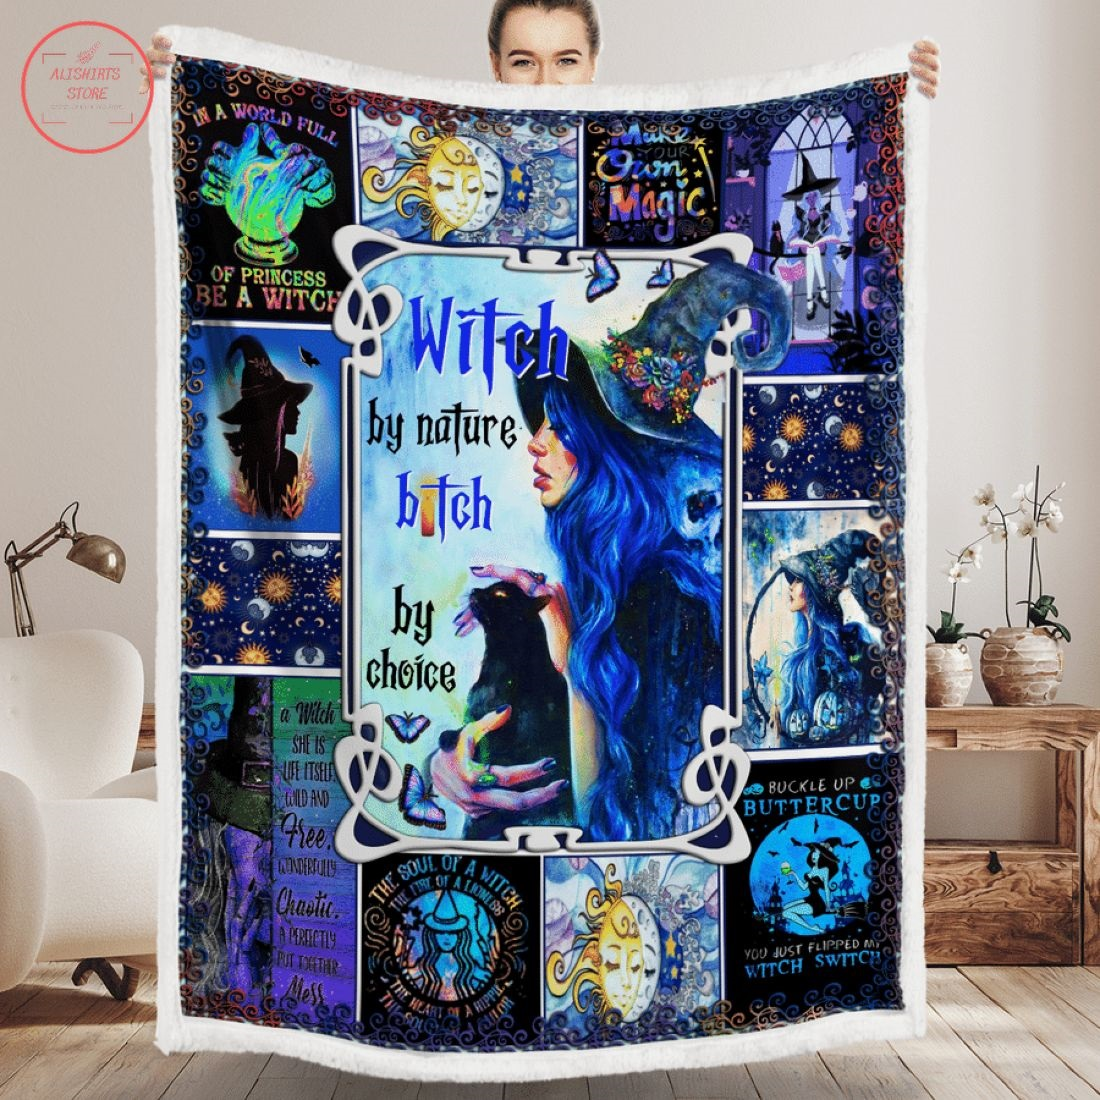 Witch By Nature Bitch Halloween Blanket